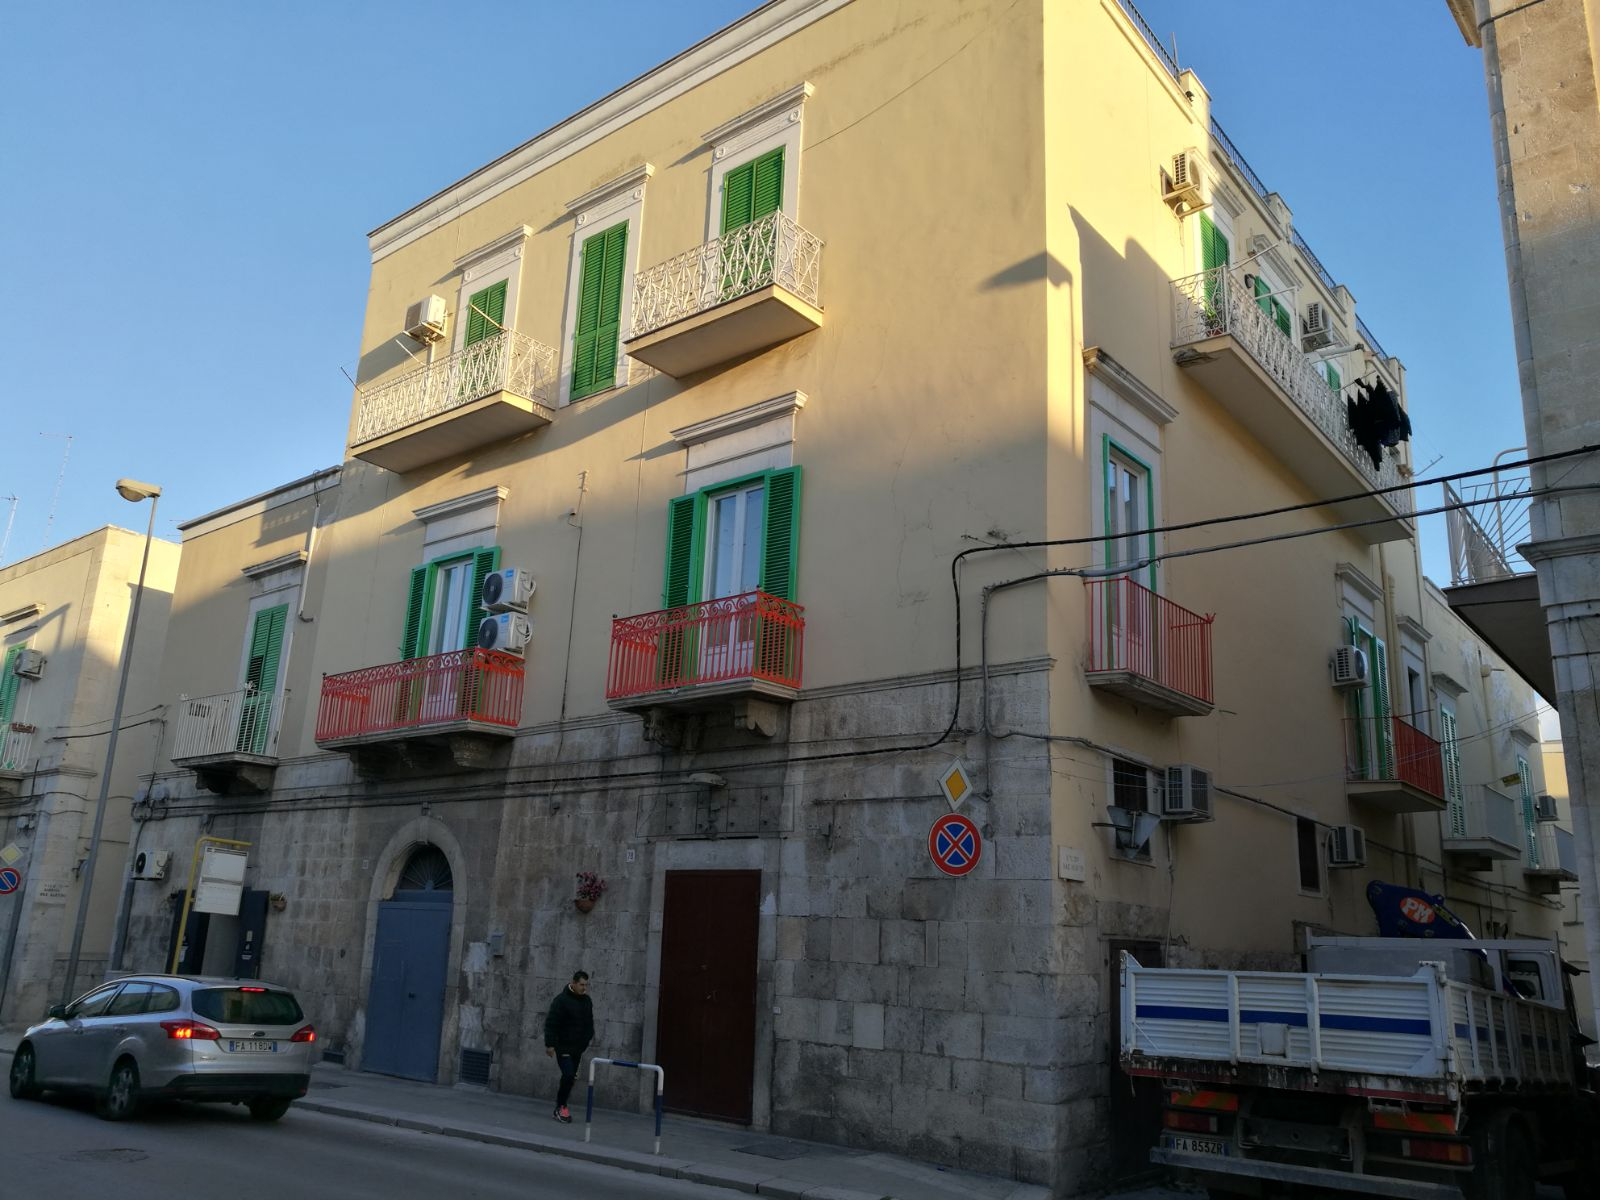 EDIFICIO IN VICO XX MAD. DEI MARTIRI